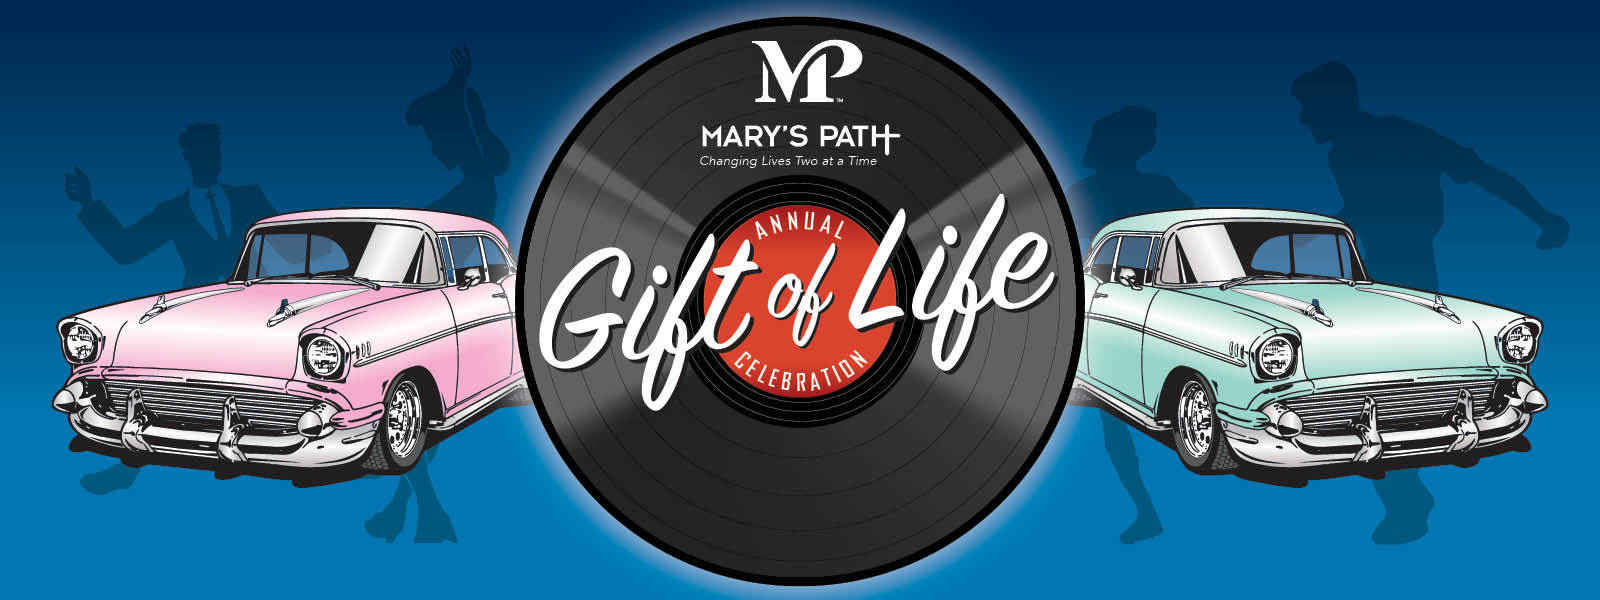 2020 Mary's Path Annual Gift of Life Gala image